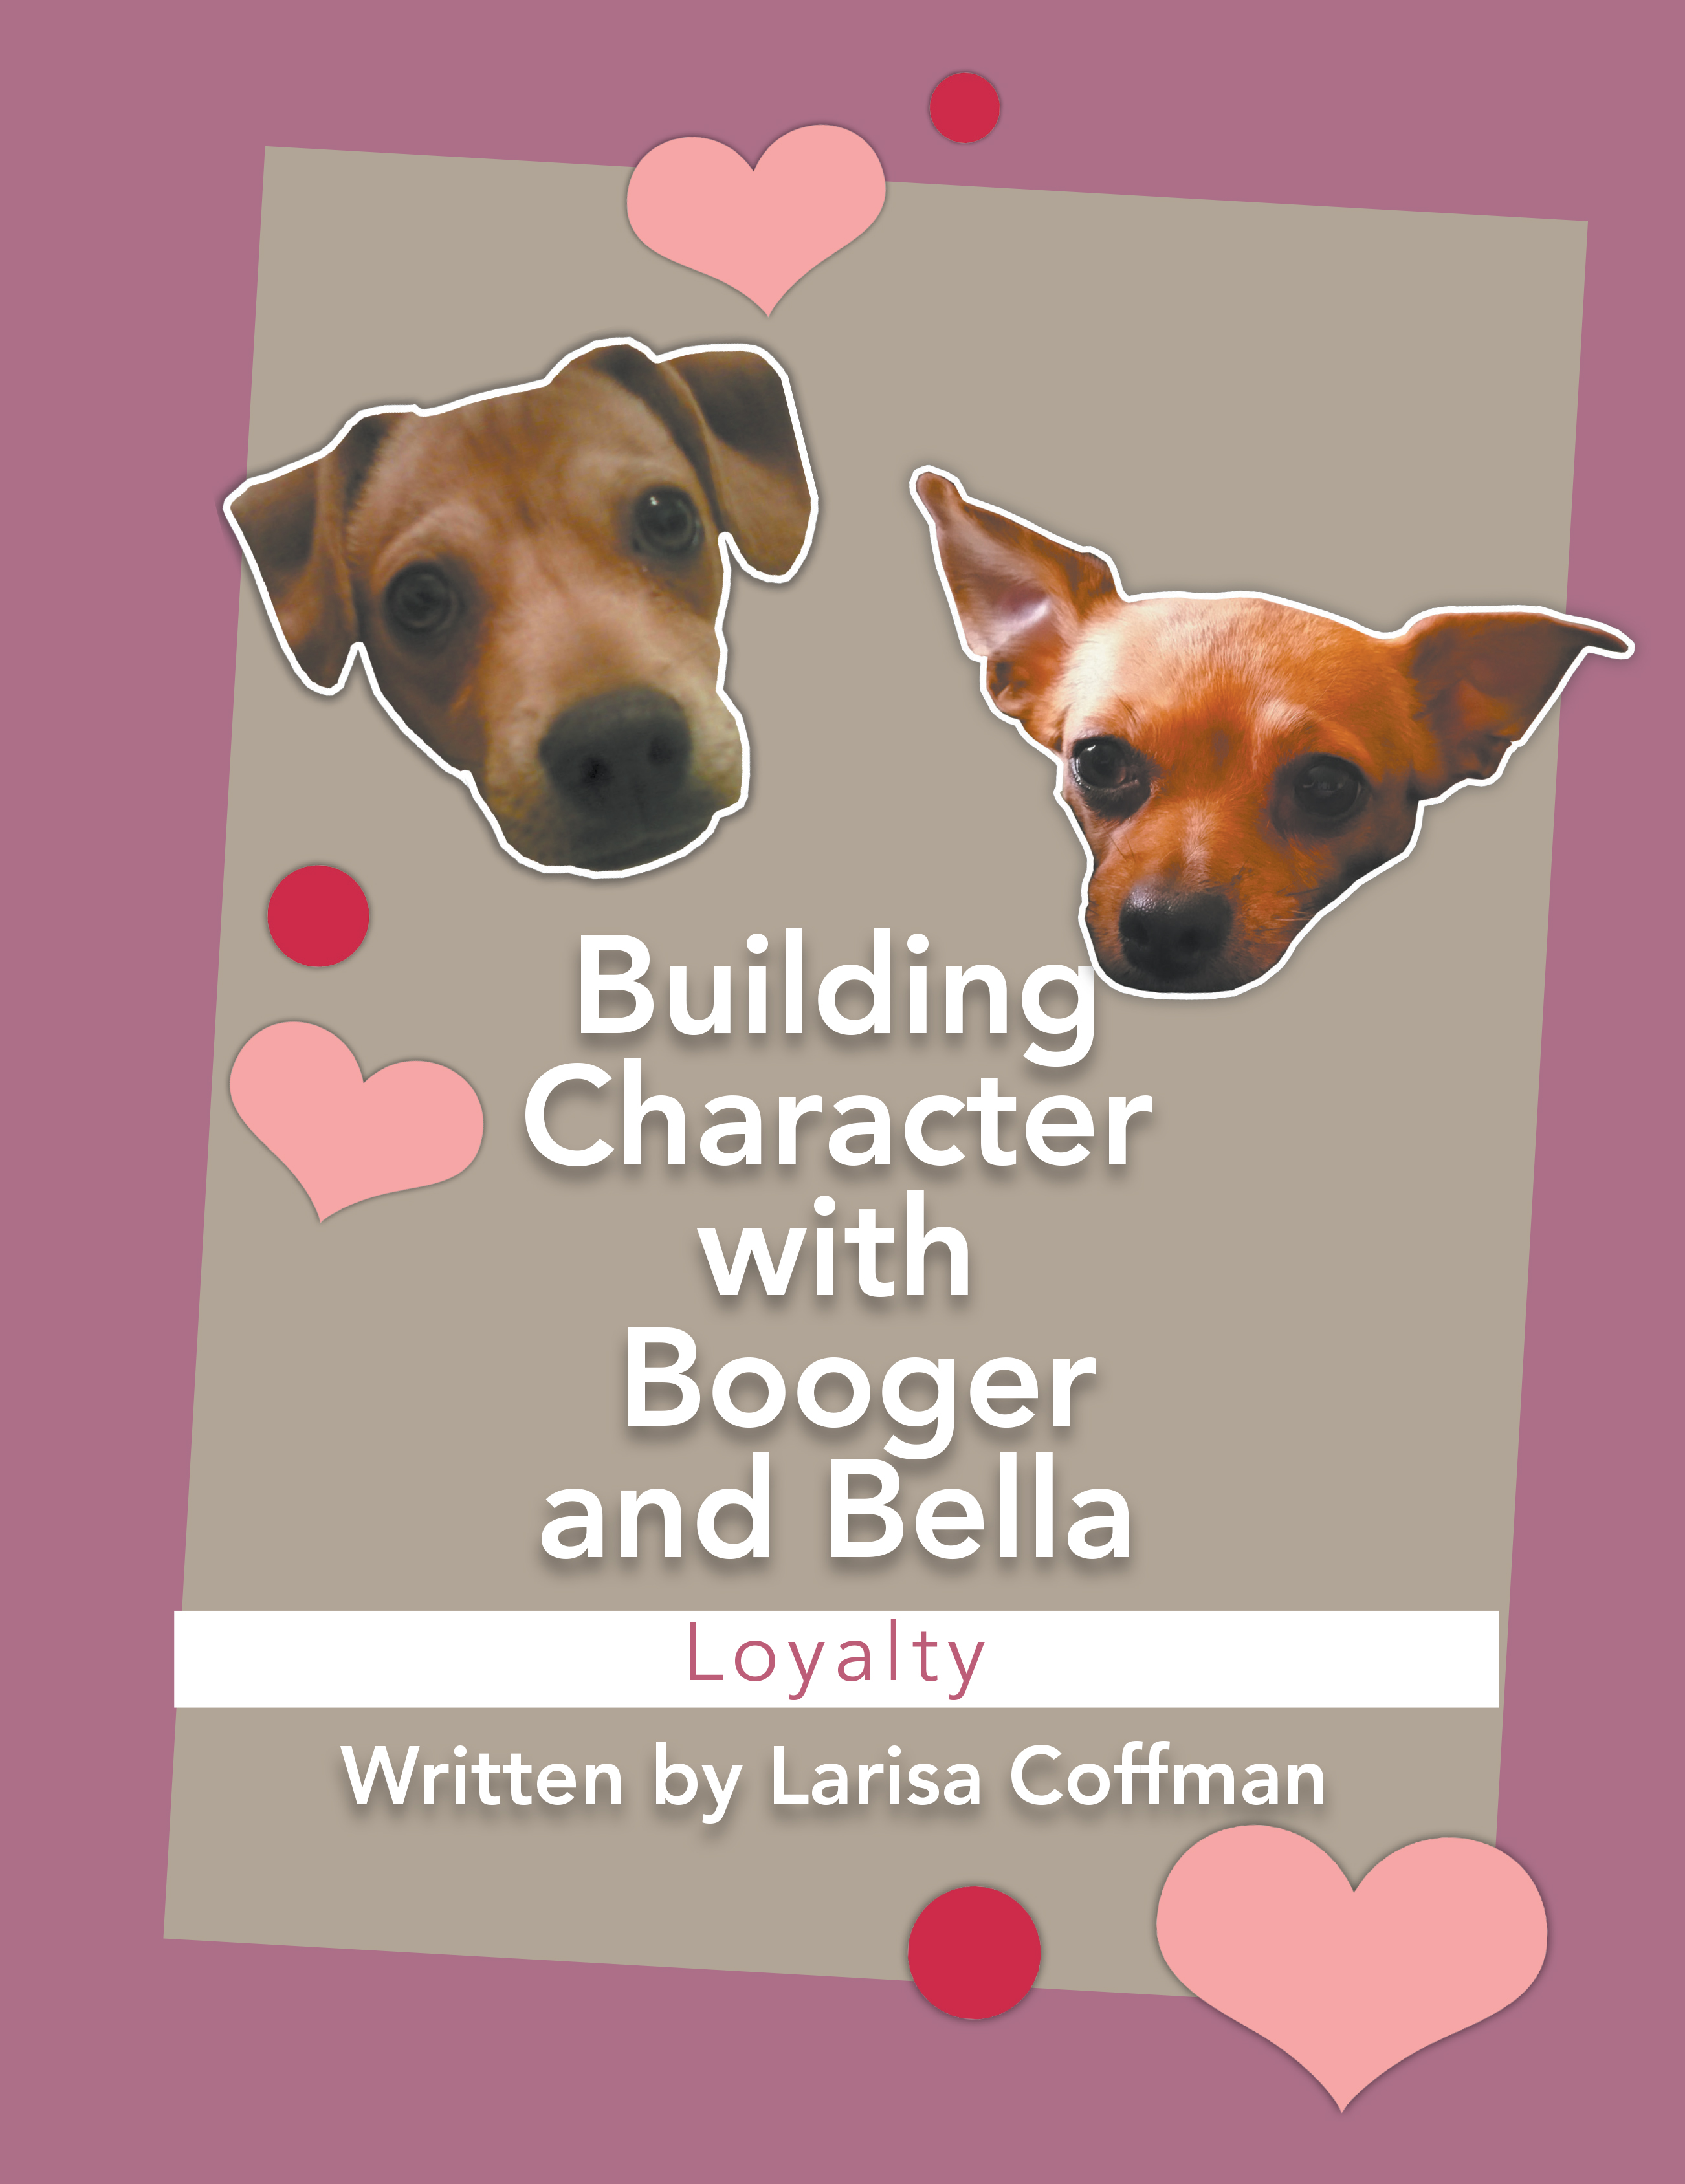 Building Character with Booger and Bella: Loyalty